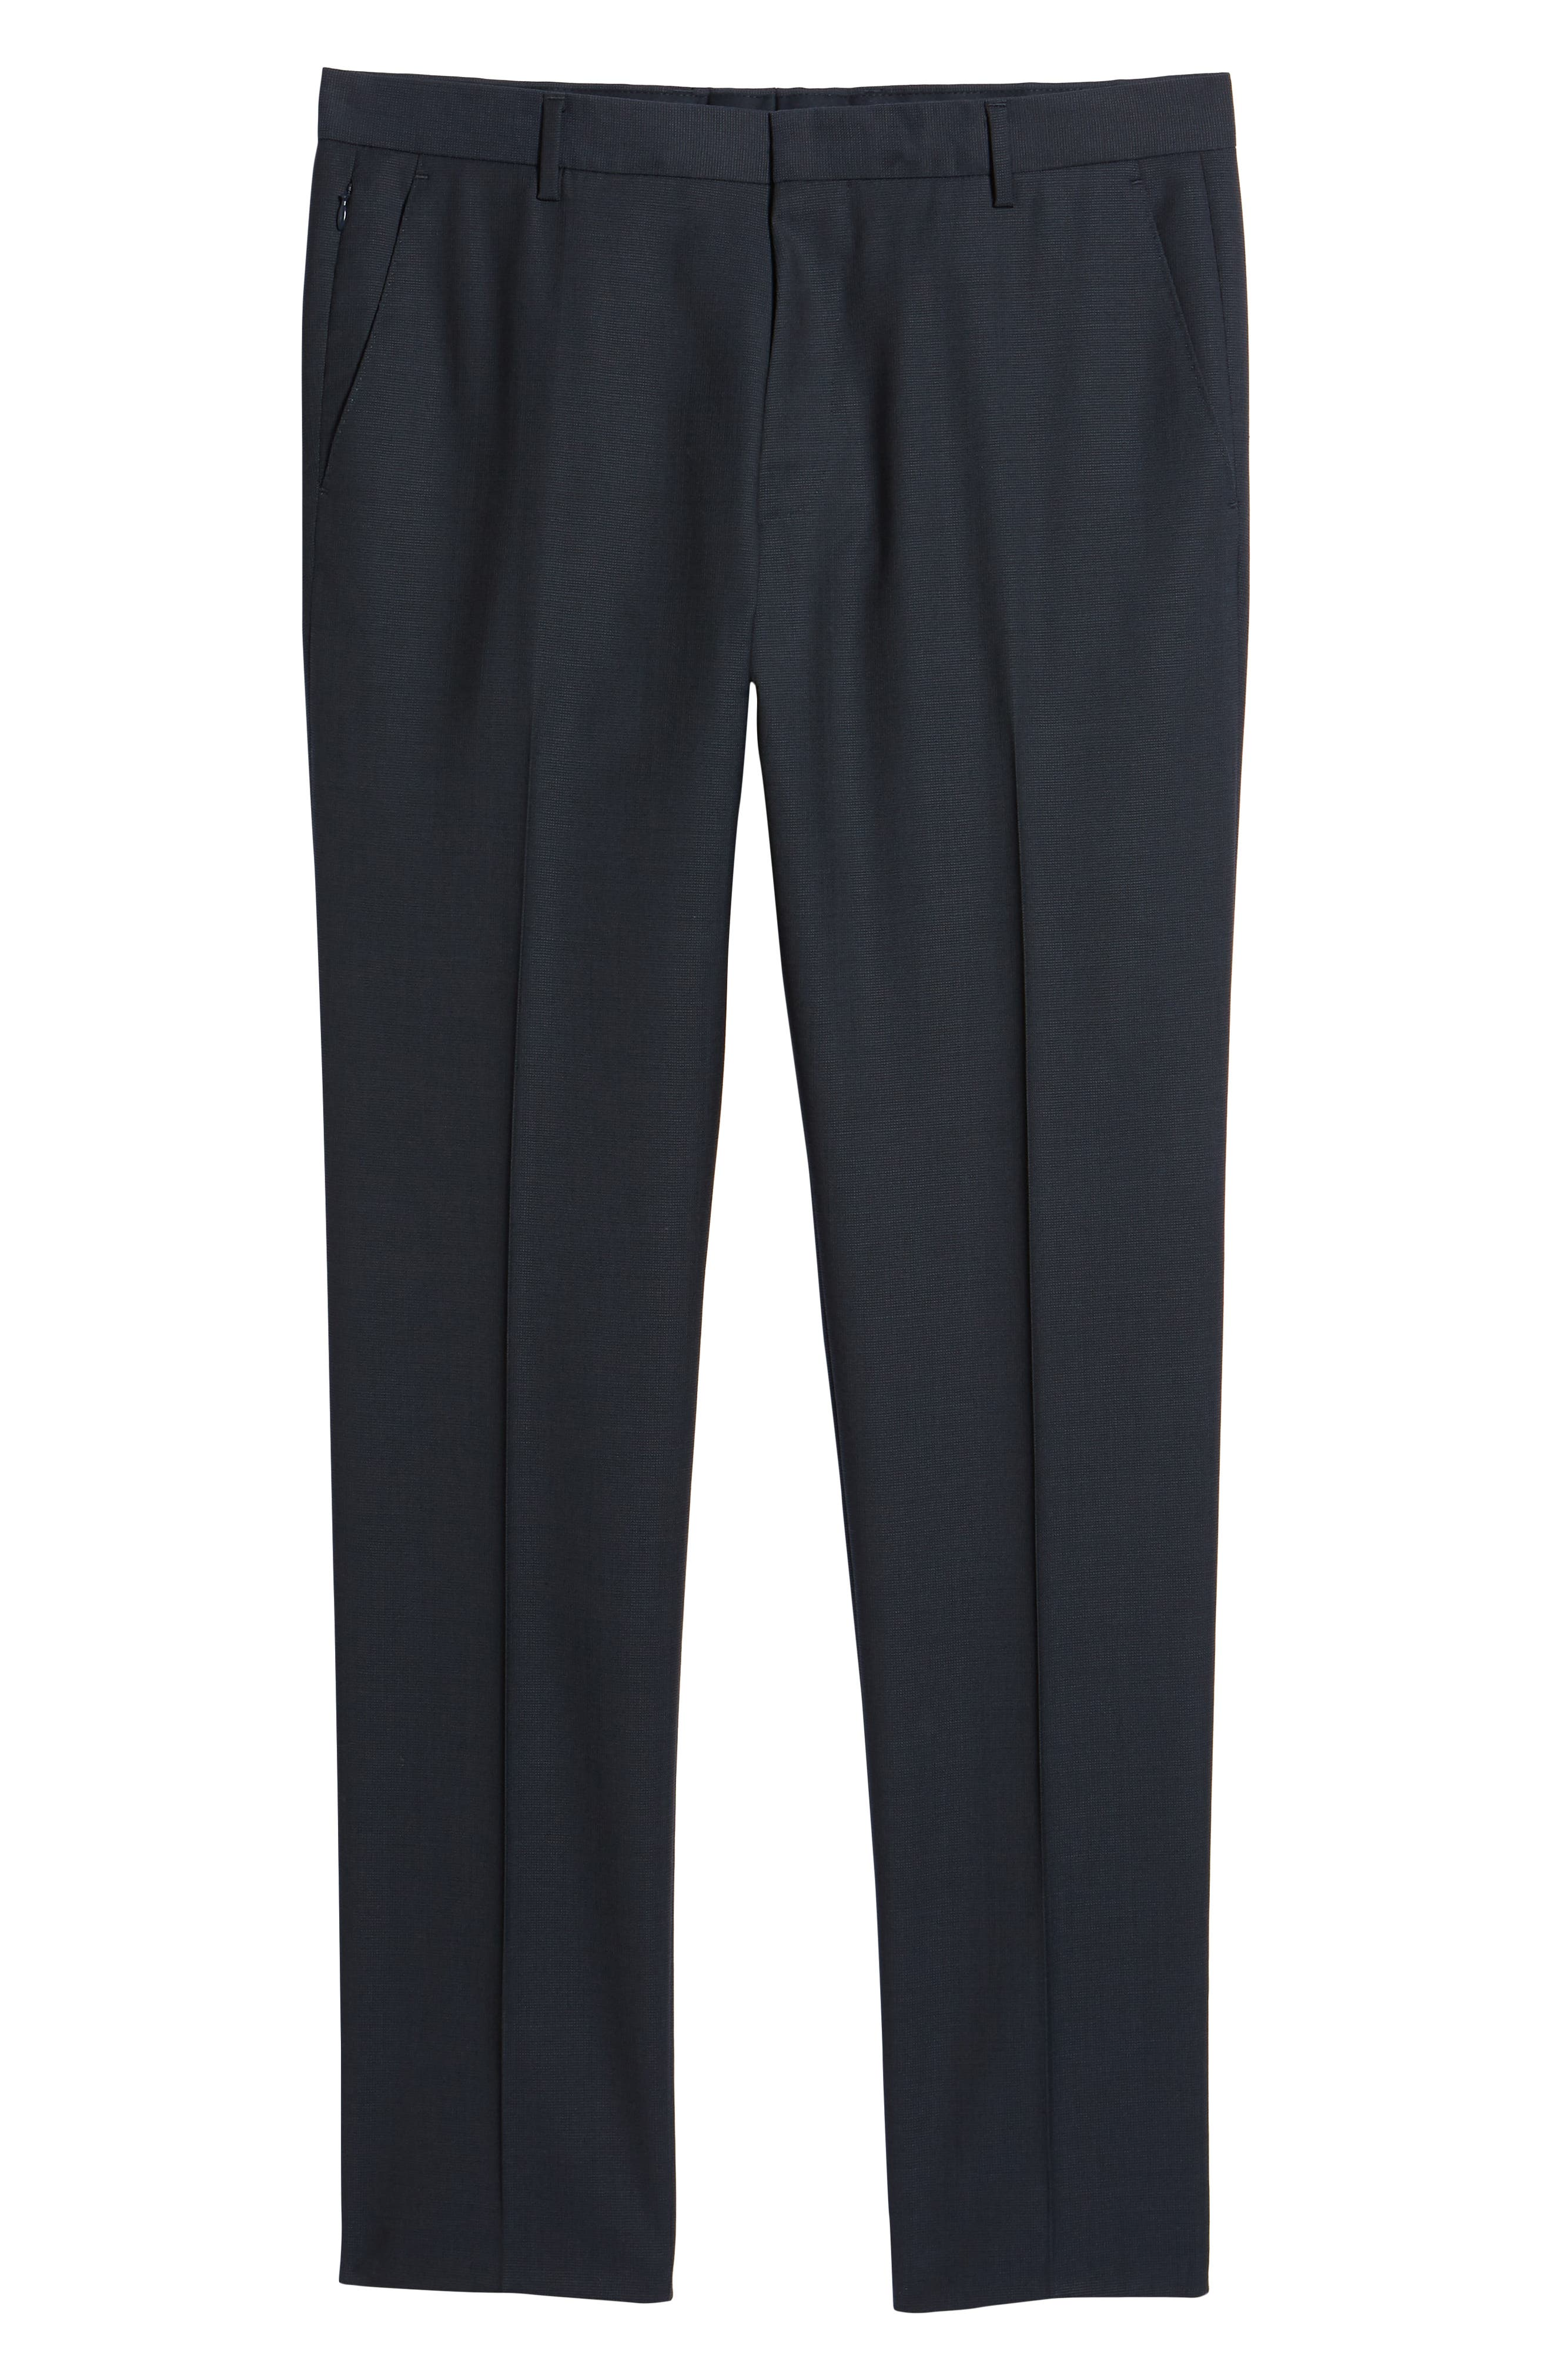 Barnes Flat Front Solid Wool Trousers,                             Alternate thumbnail 6, color,                             Navy